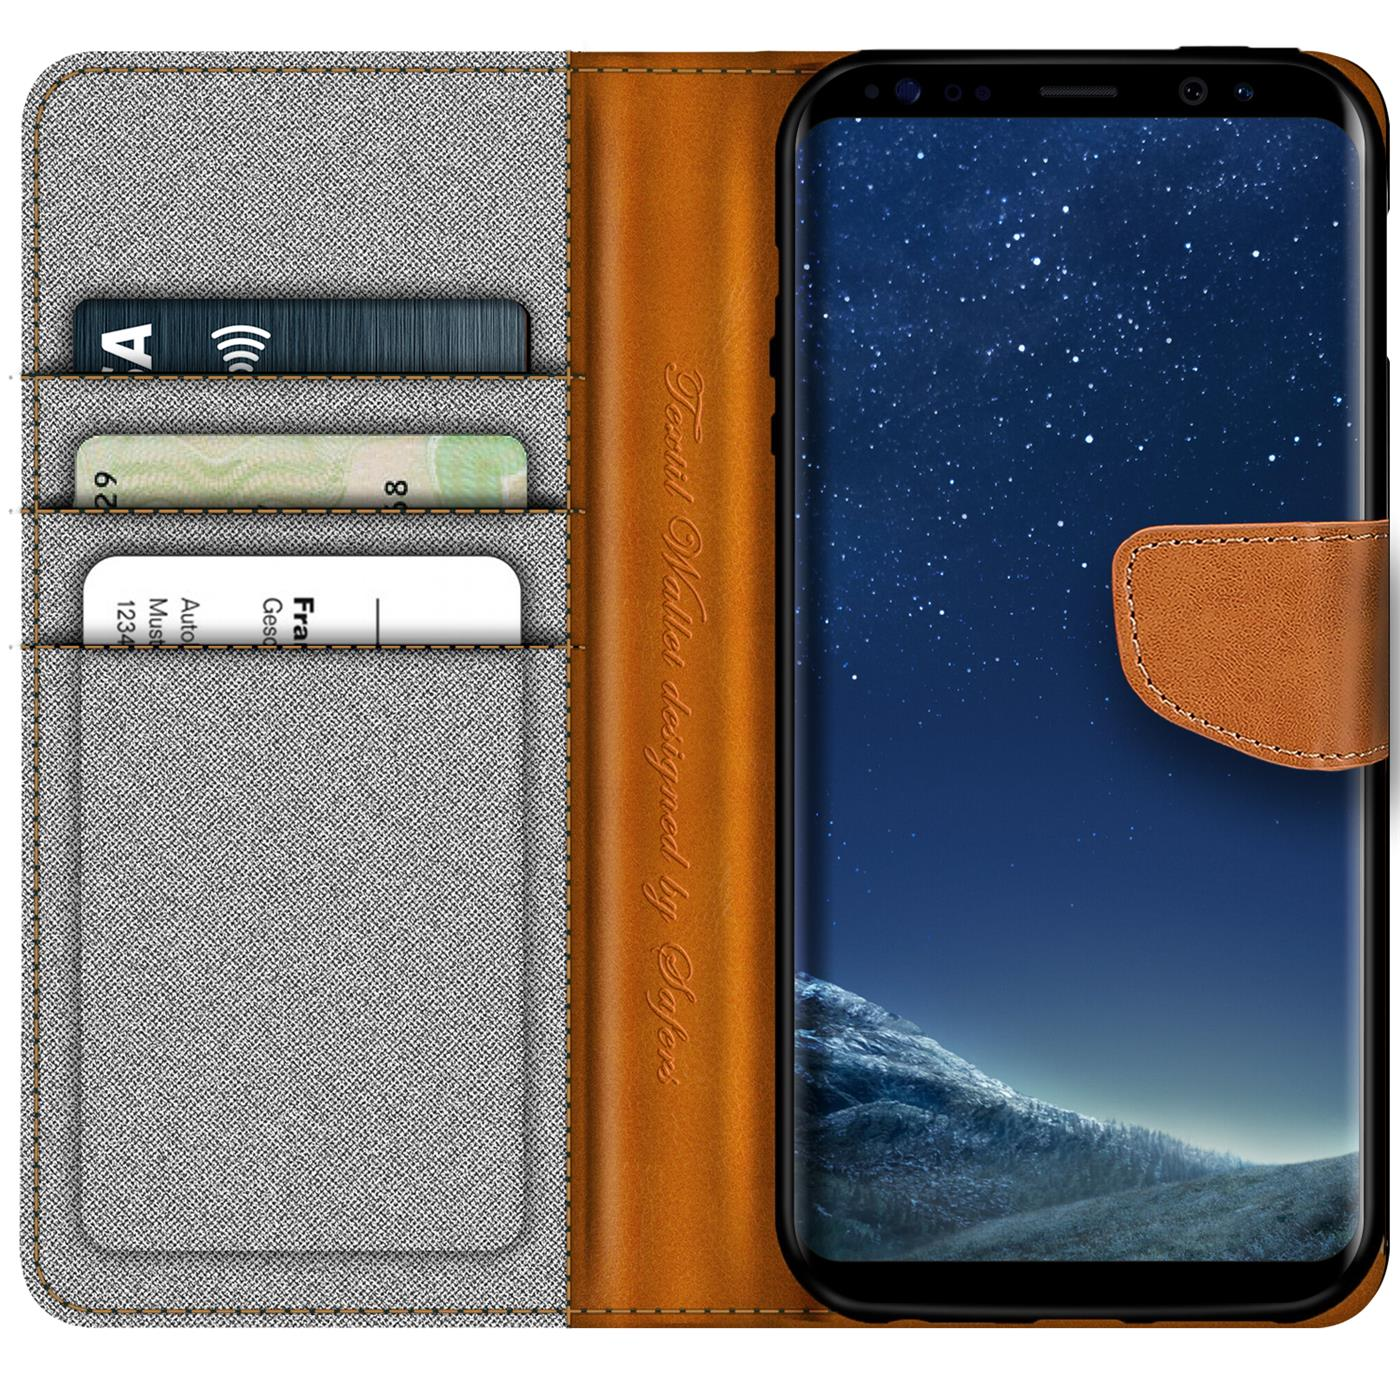 Samsung-Galaxy-S8-Plus-Phone-PU-Leather-Magnetic-Flip-Case-Wallet-Denim-Cover thumbnail 11